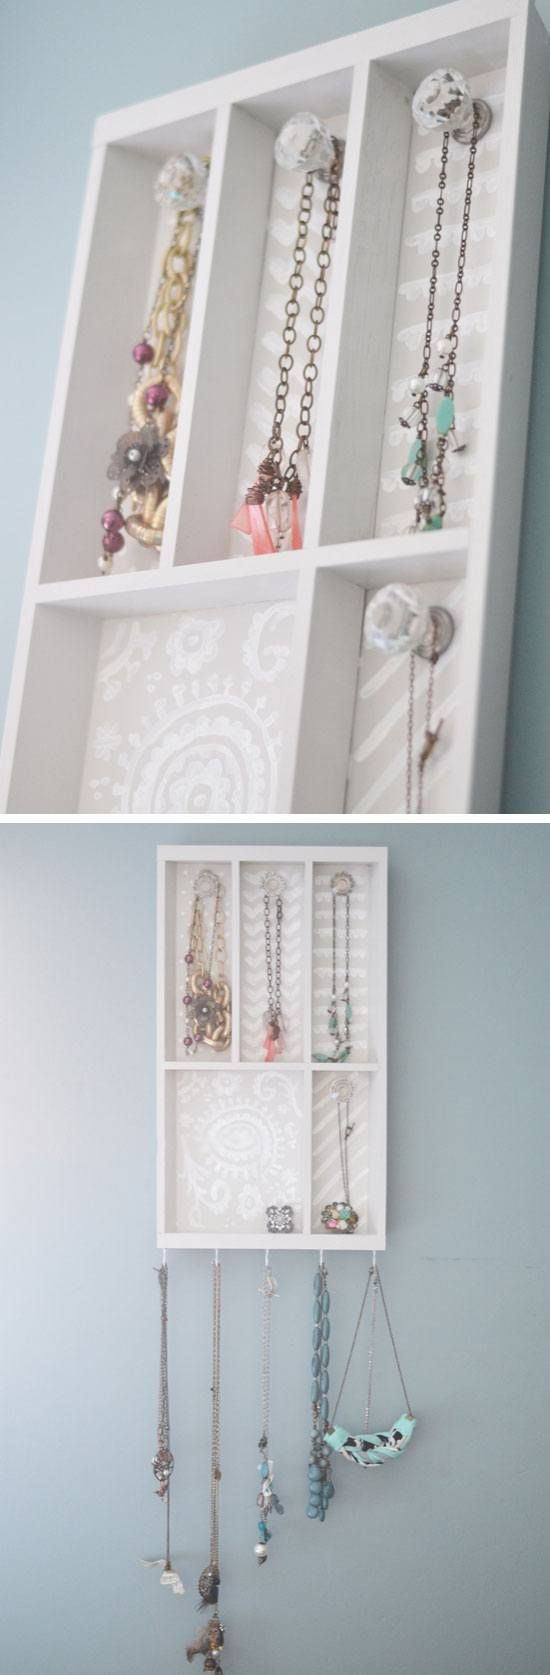 Make a Jewelry Holder from a Cutlery Tray | Click Pic for 18 DIY Jewelry Storage Ideas for Small Bedrooms | Dollar Store Organizing Ideas for the Home